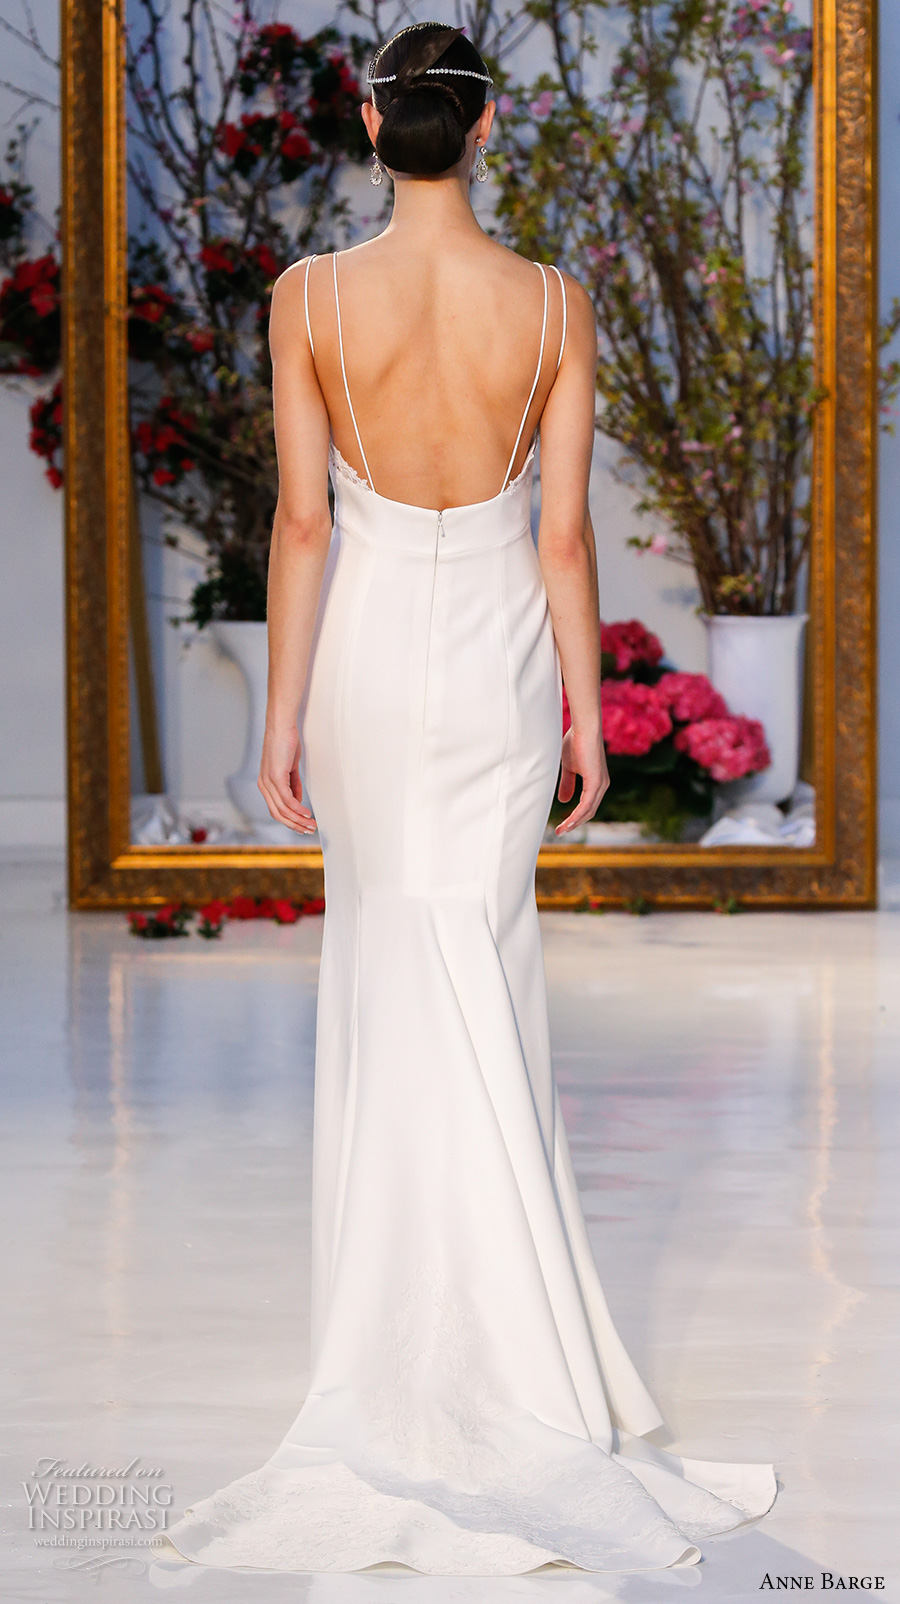 anne barge spring 2017 bridal sleeveless spagetti strap deep sweetheart neckline embellished bodice simple elegant sheath wedding dress low back sweep train (012) bv